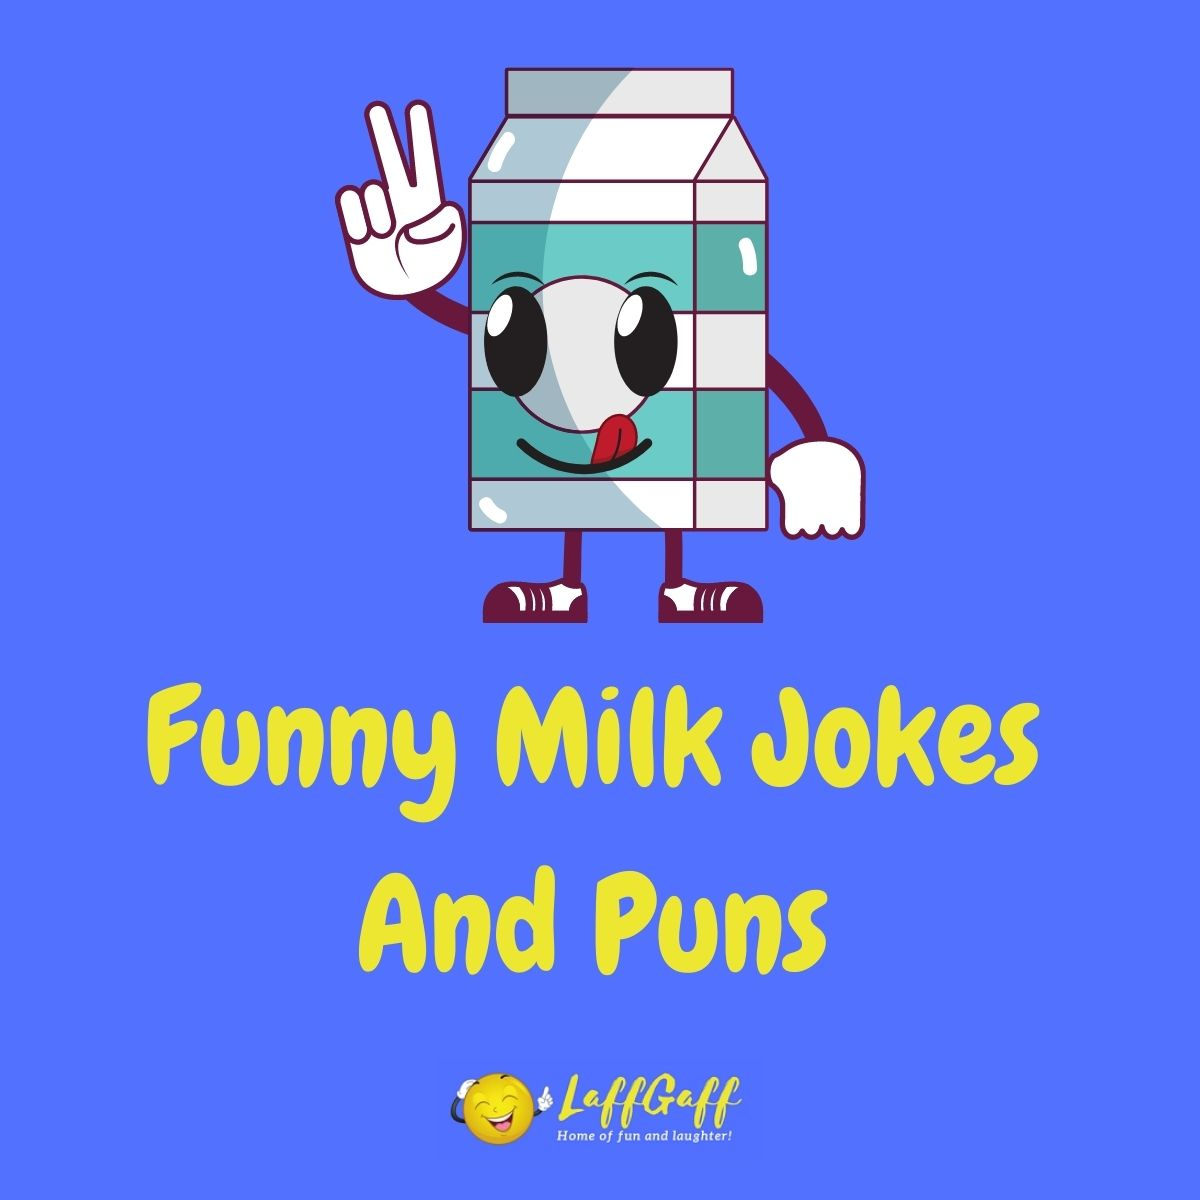 Featured image for a page of funny milk jokes and puns.